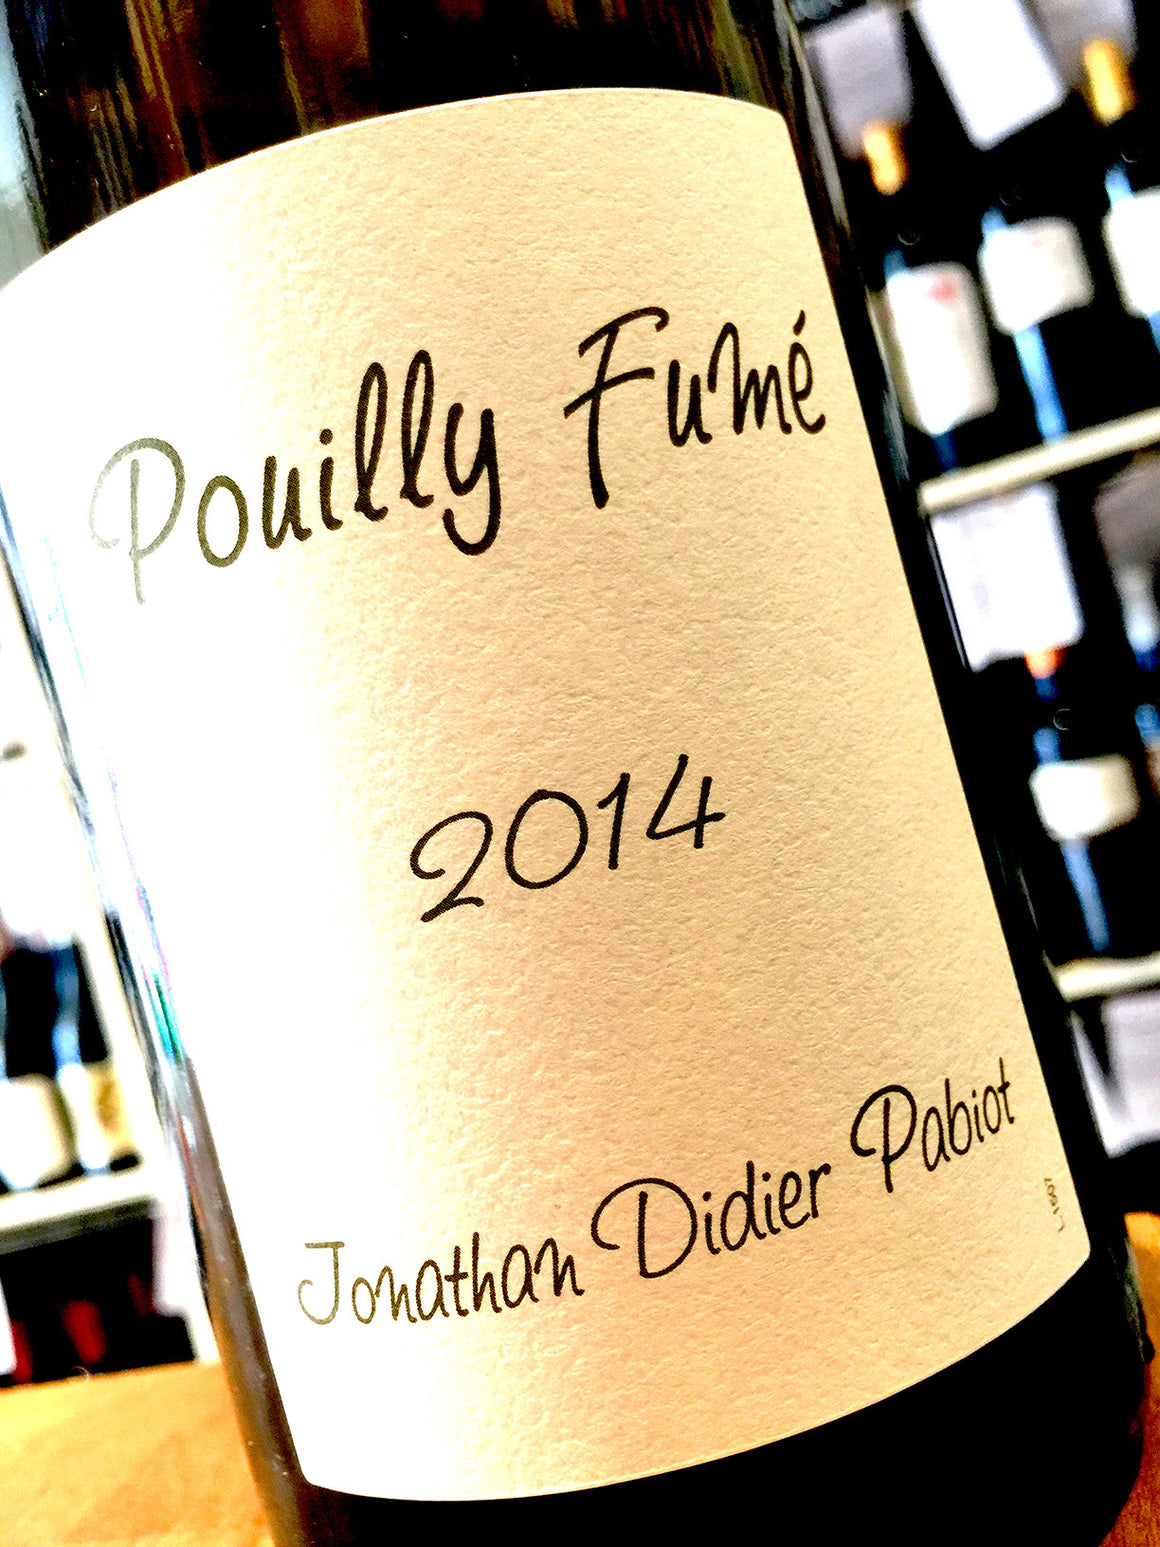 Jonathan Pabiot Pouilly Fume 2014 75cl